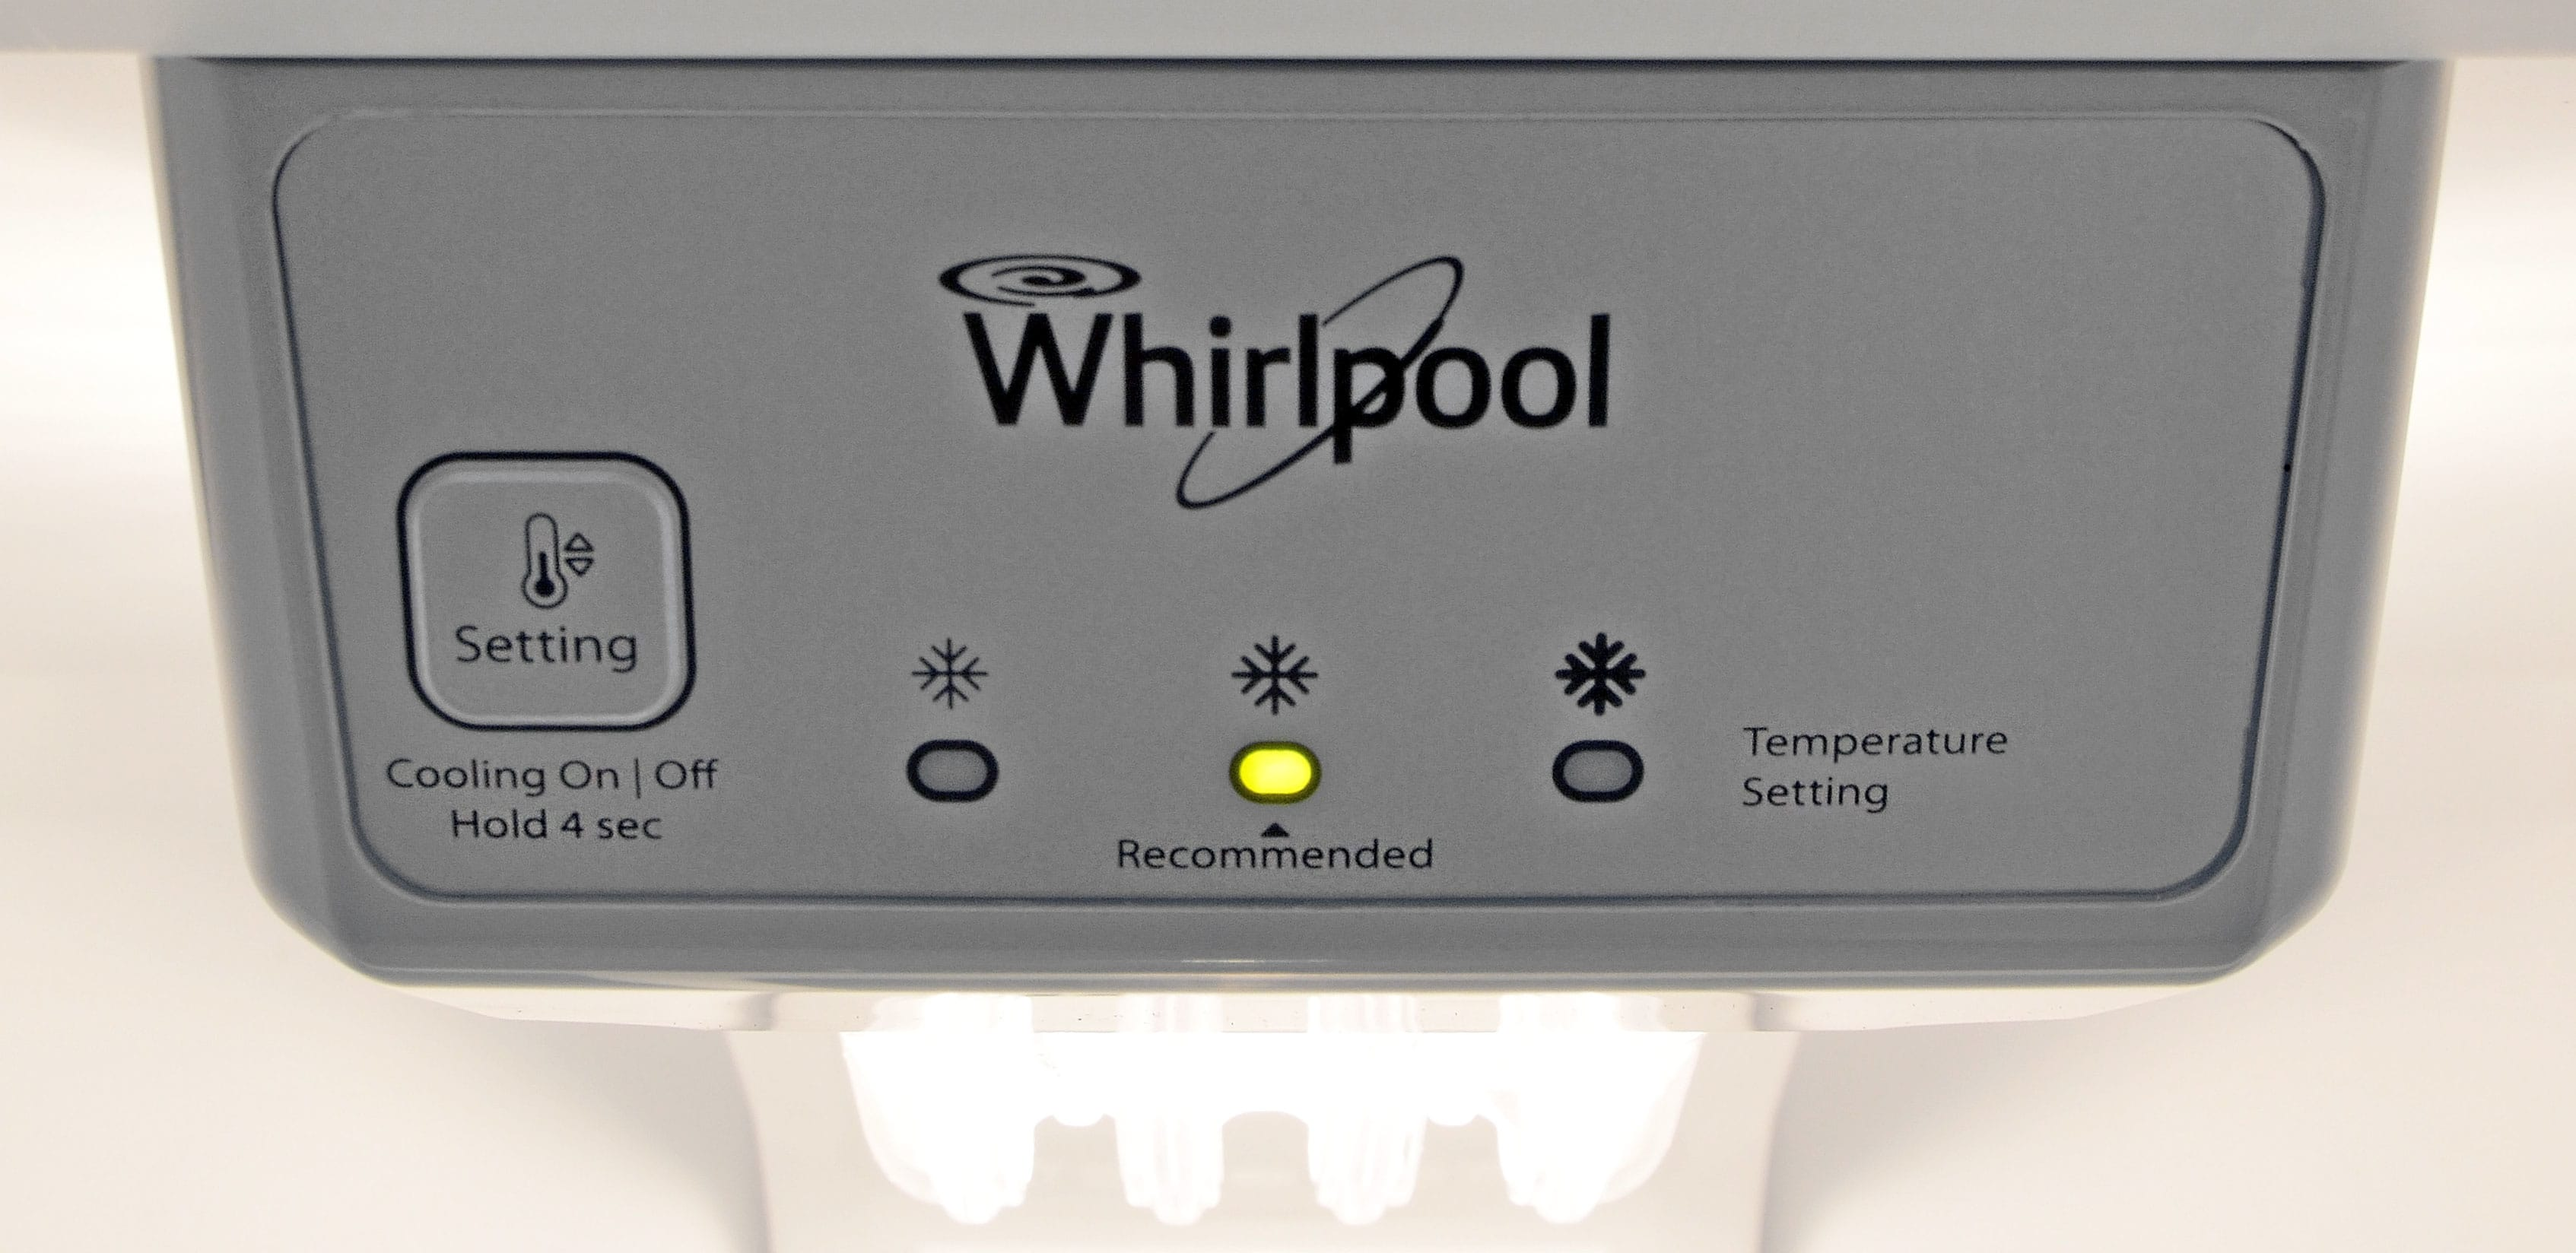 The Whirlpool WRT318FZDB is definitely NOT about consumer control. No sliding scales here, but fortunately the recommended setting is more or less on point.